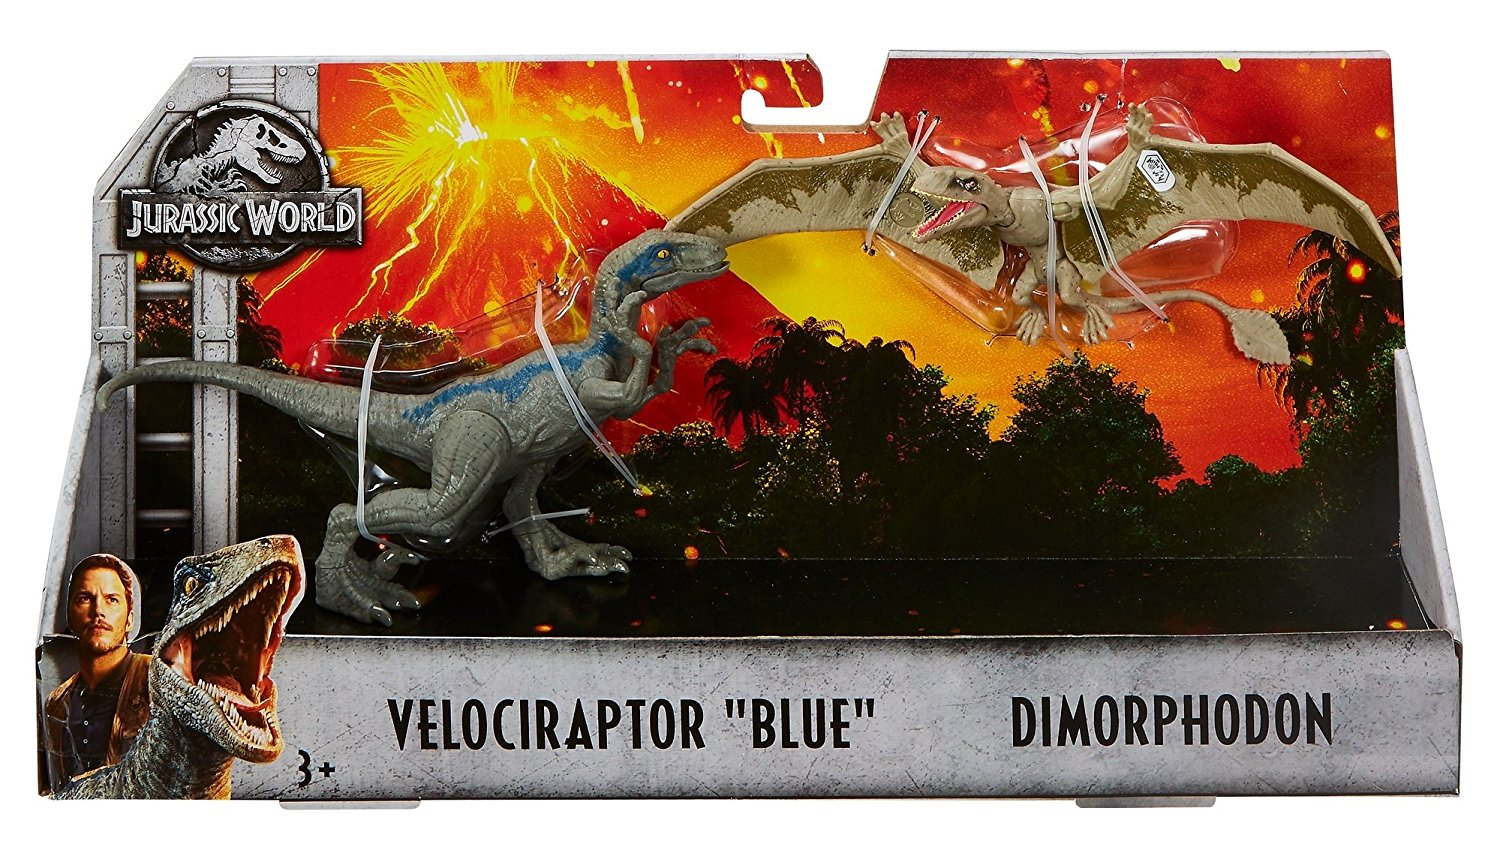 Velociraptor Blue and Dimorphodon Jurassic World 2-Pack